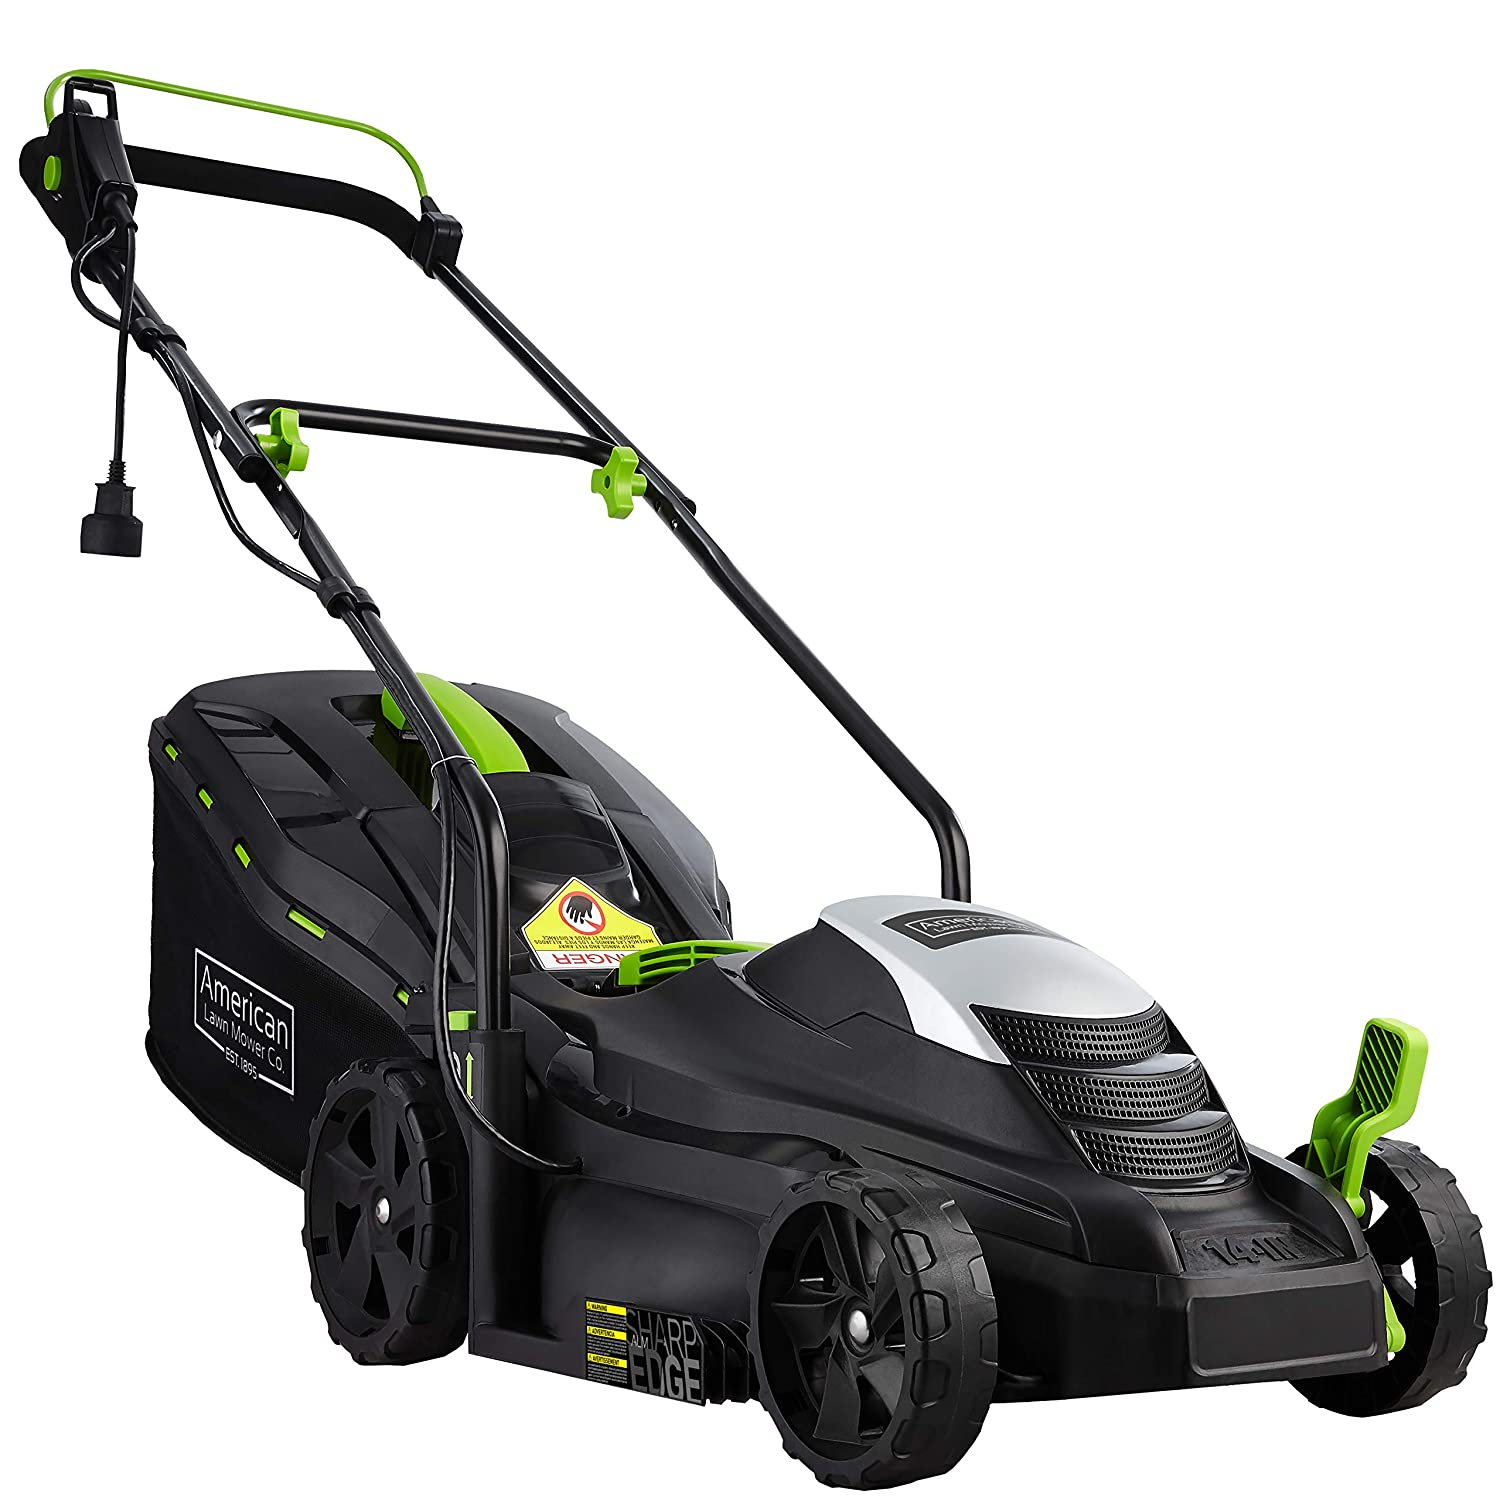 American Lawn Mower Company 50514 14-Inch 11-Amp Corded Electric Lawn Mower